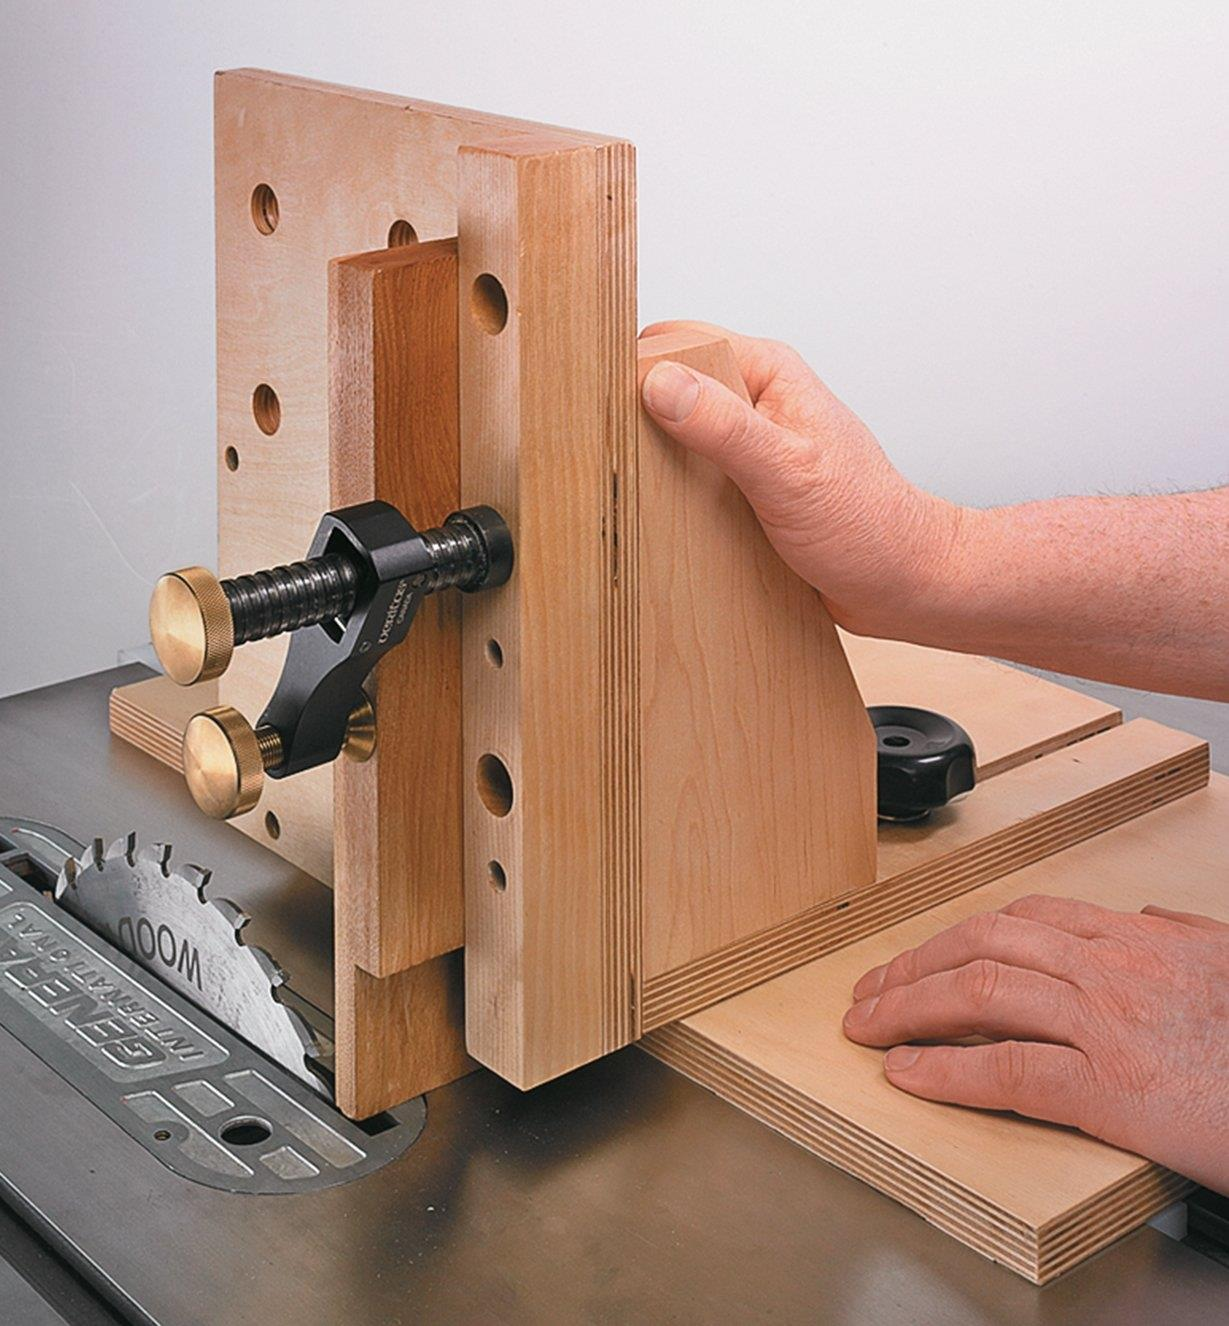 Veritas Surface Clamp holding a workpiece to a jig while cutting on a table saw